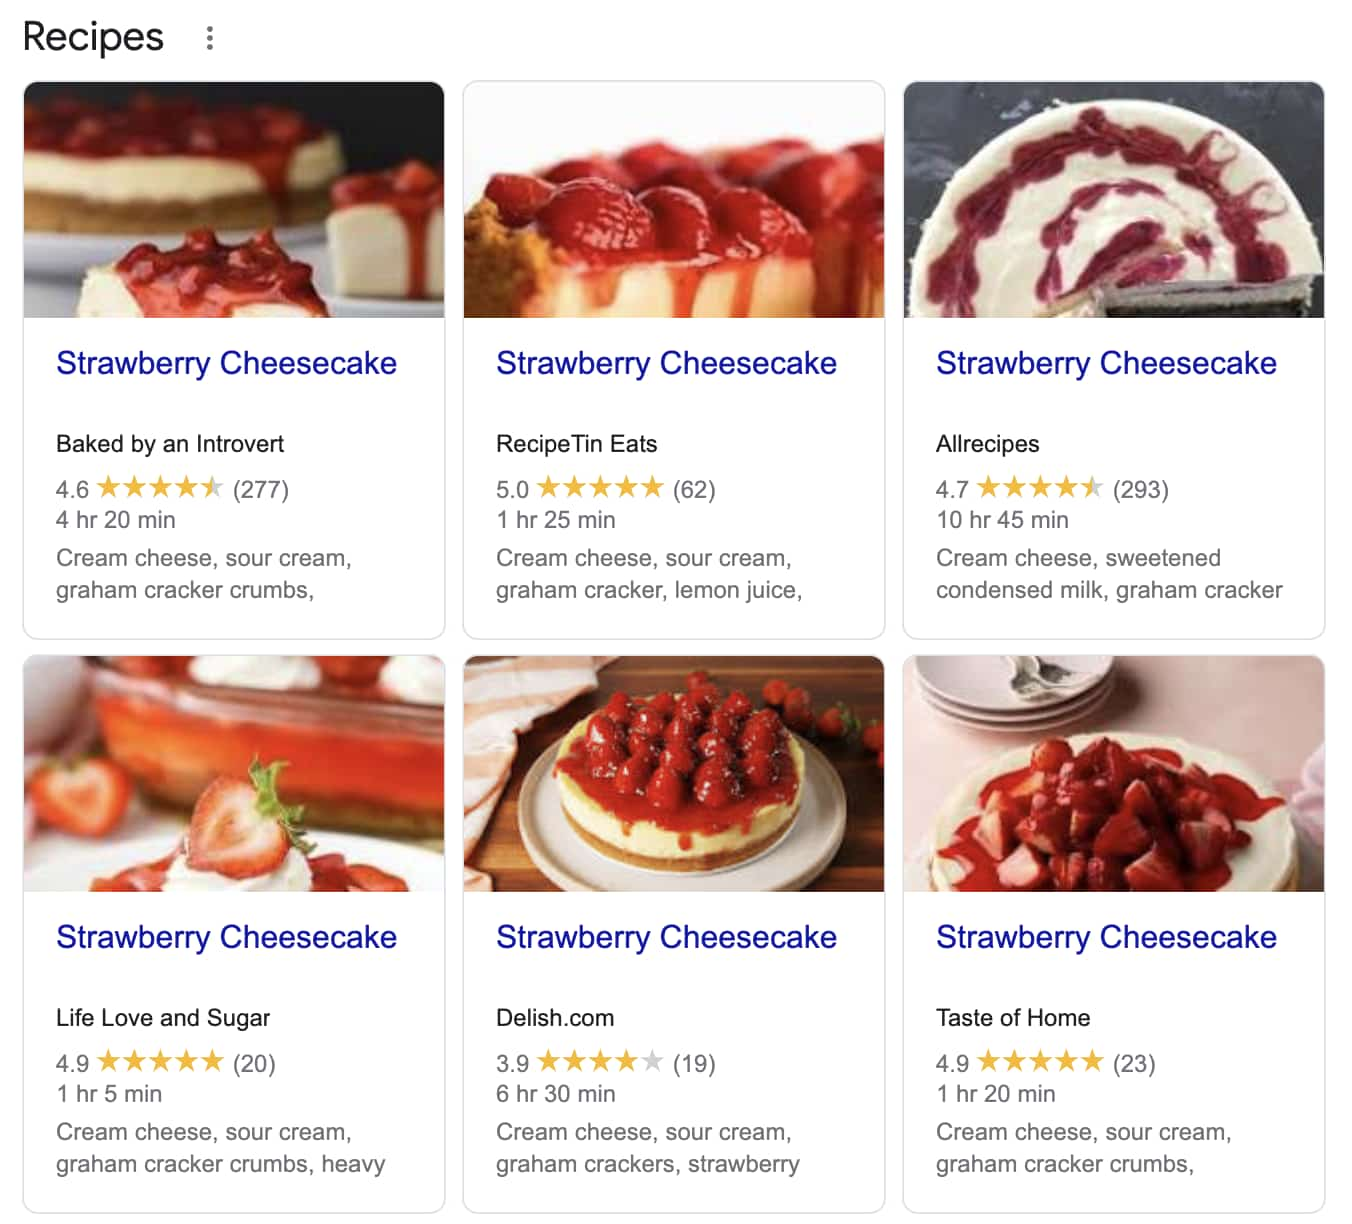 Food Blog SEO: Example of highly competitive recipe keywords, strawberry cheesecake in google search results